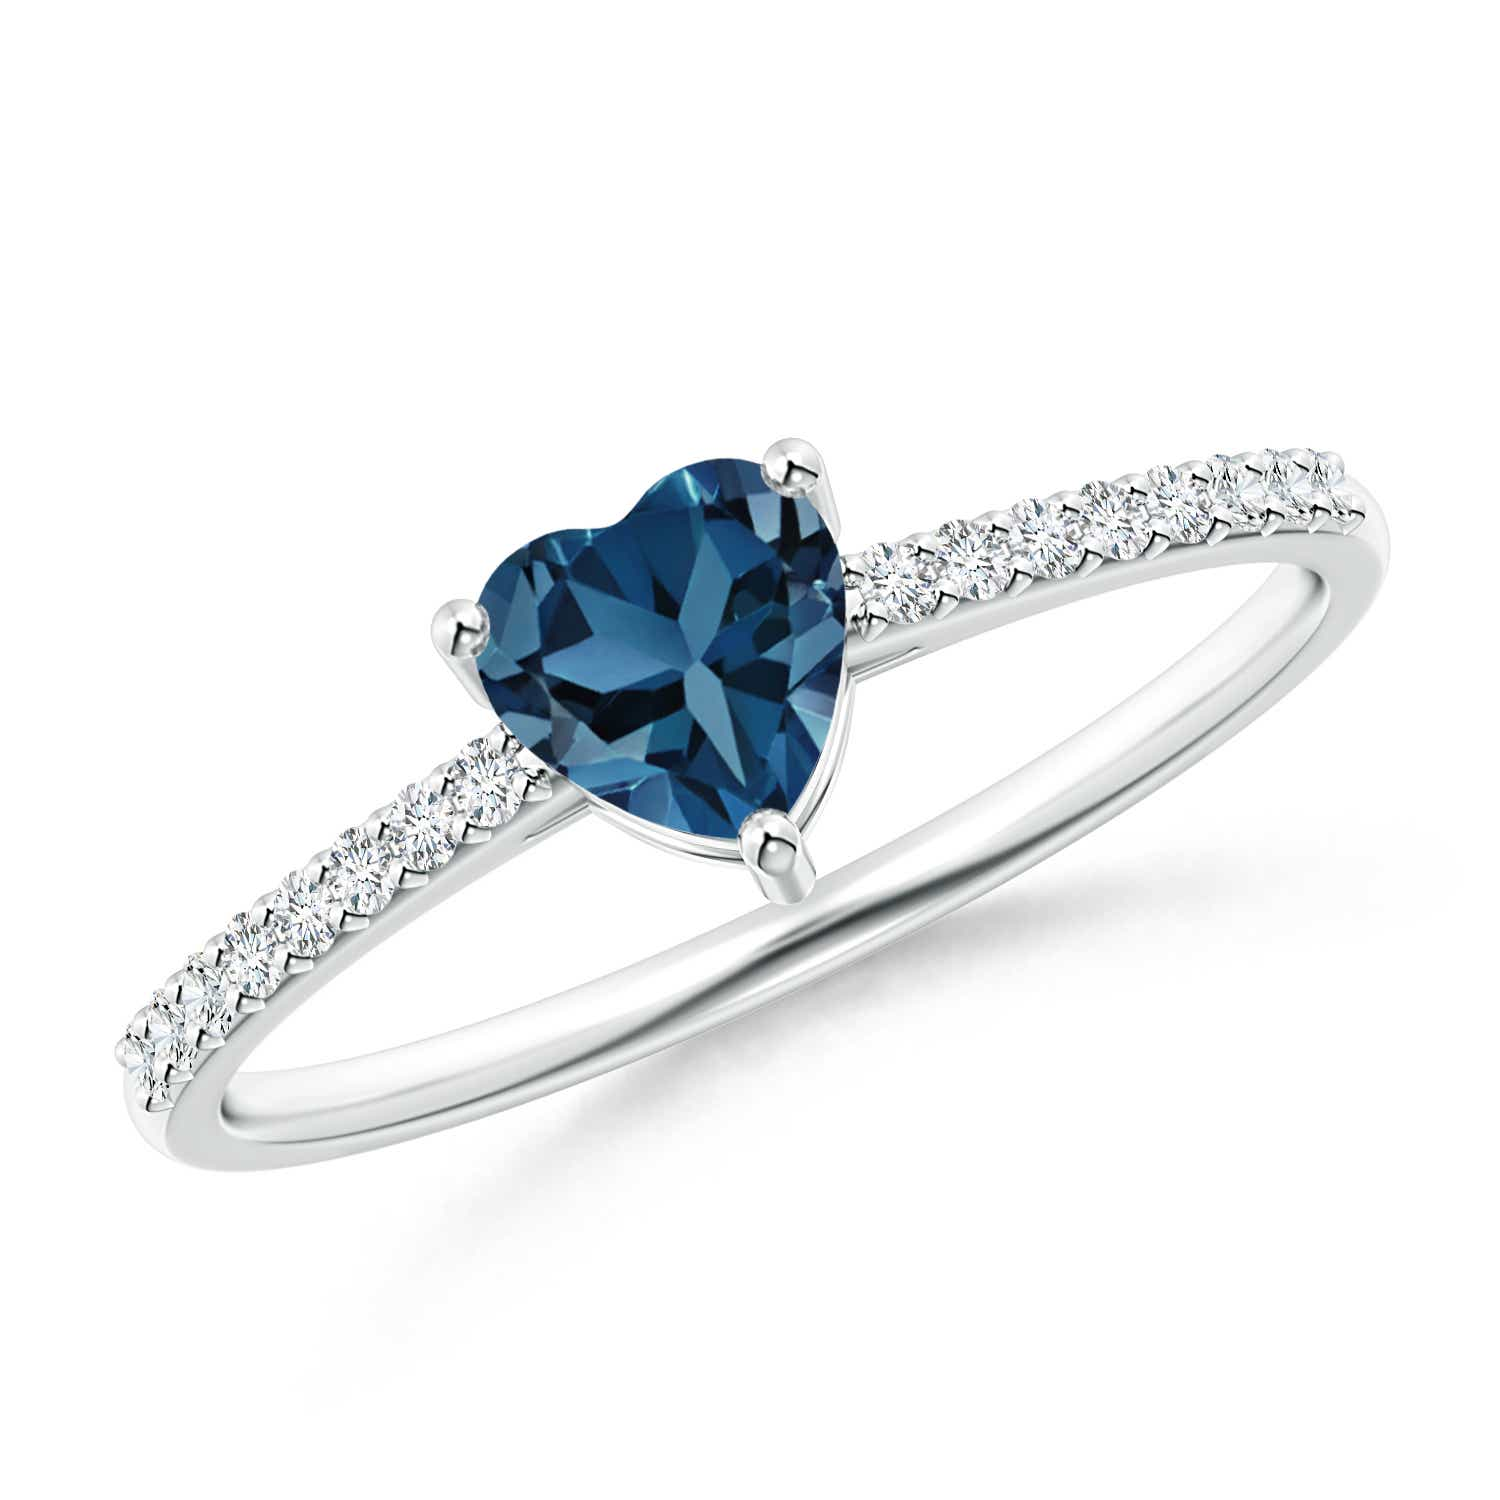 Angara Heart Shaped Swiss Blue Topaz Diamond Ring in White Gold